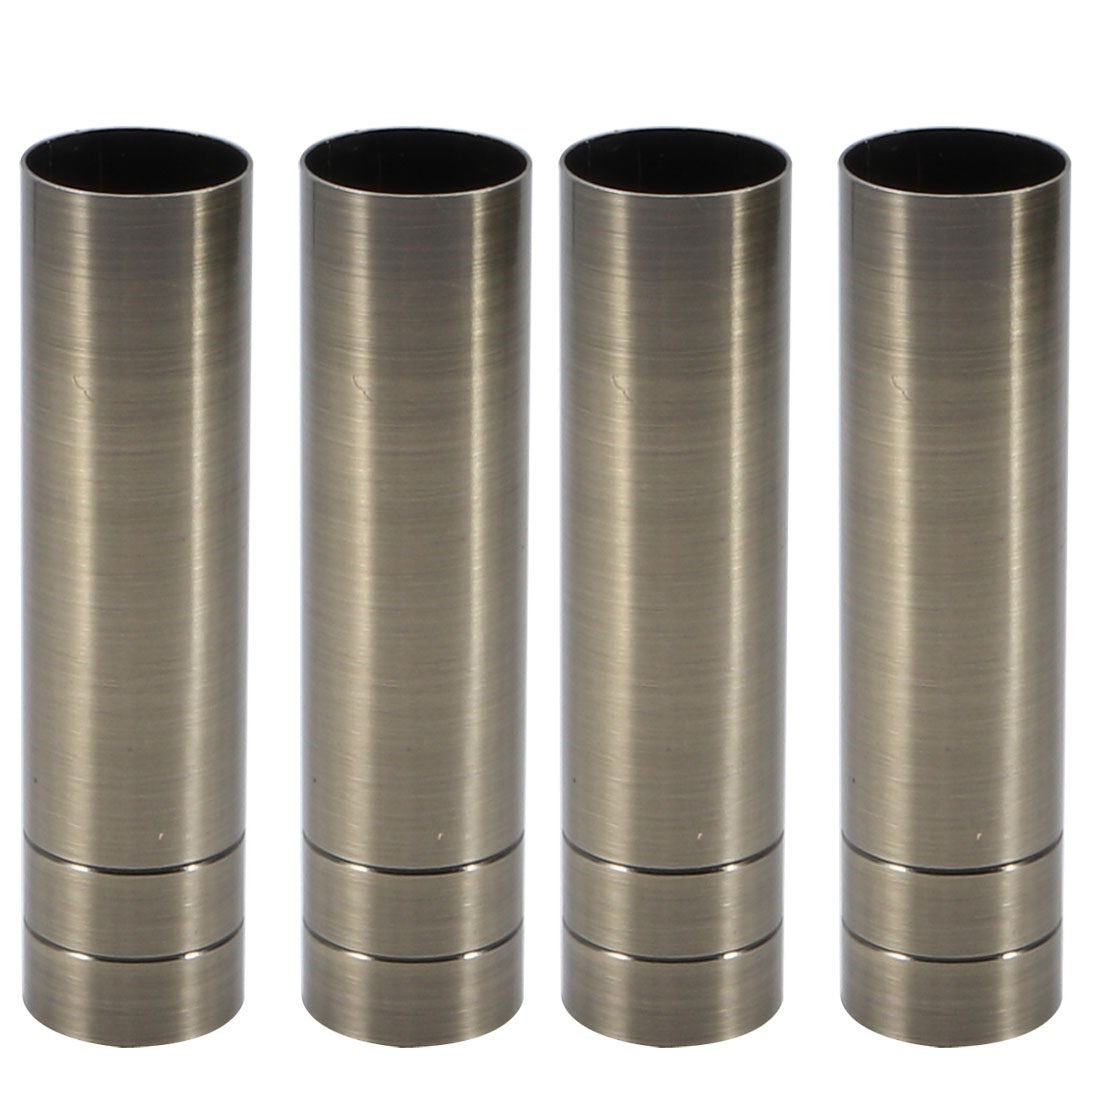 4pcs 25mmx100mm Bronze Tone Metal Candle Cover Sleeves Chandelier Socket Covers